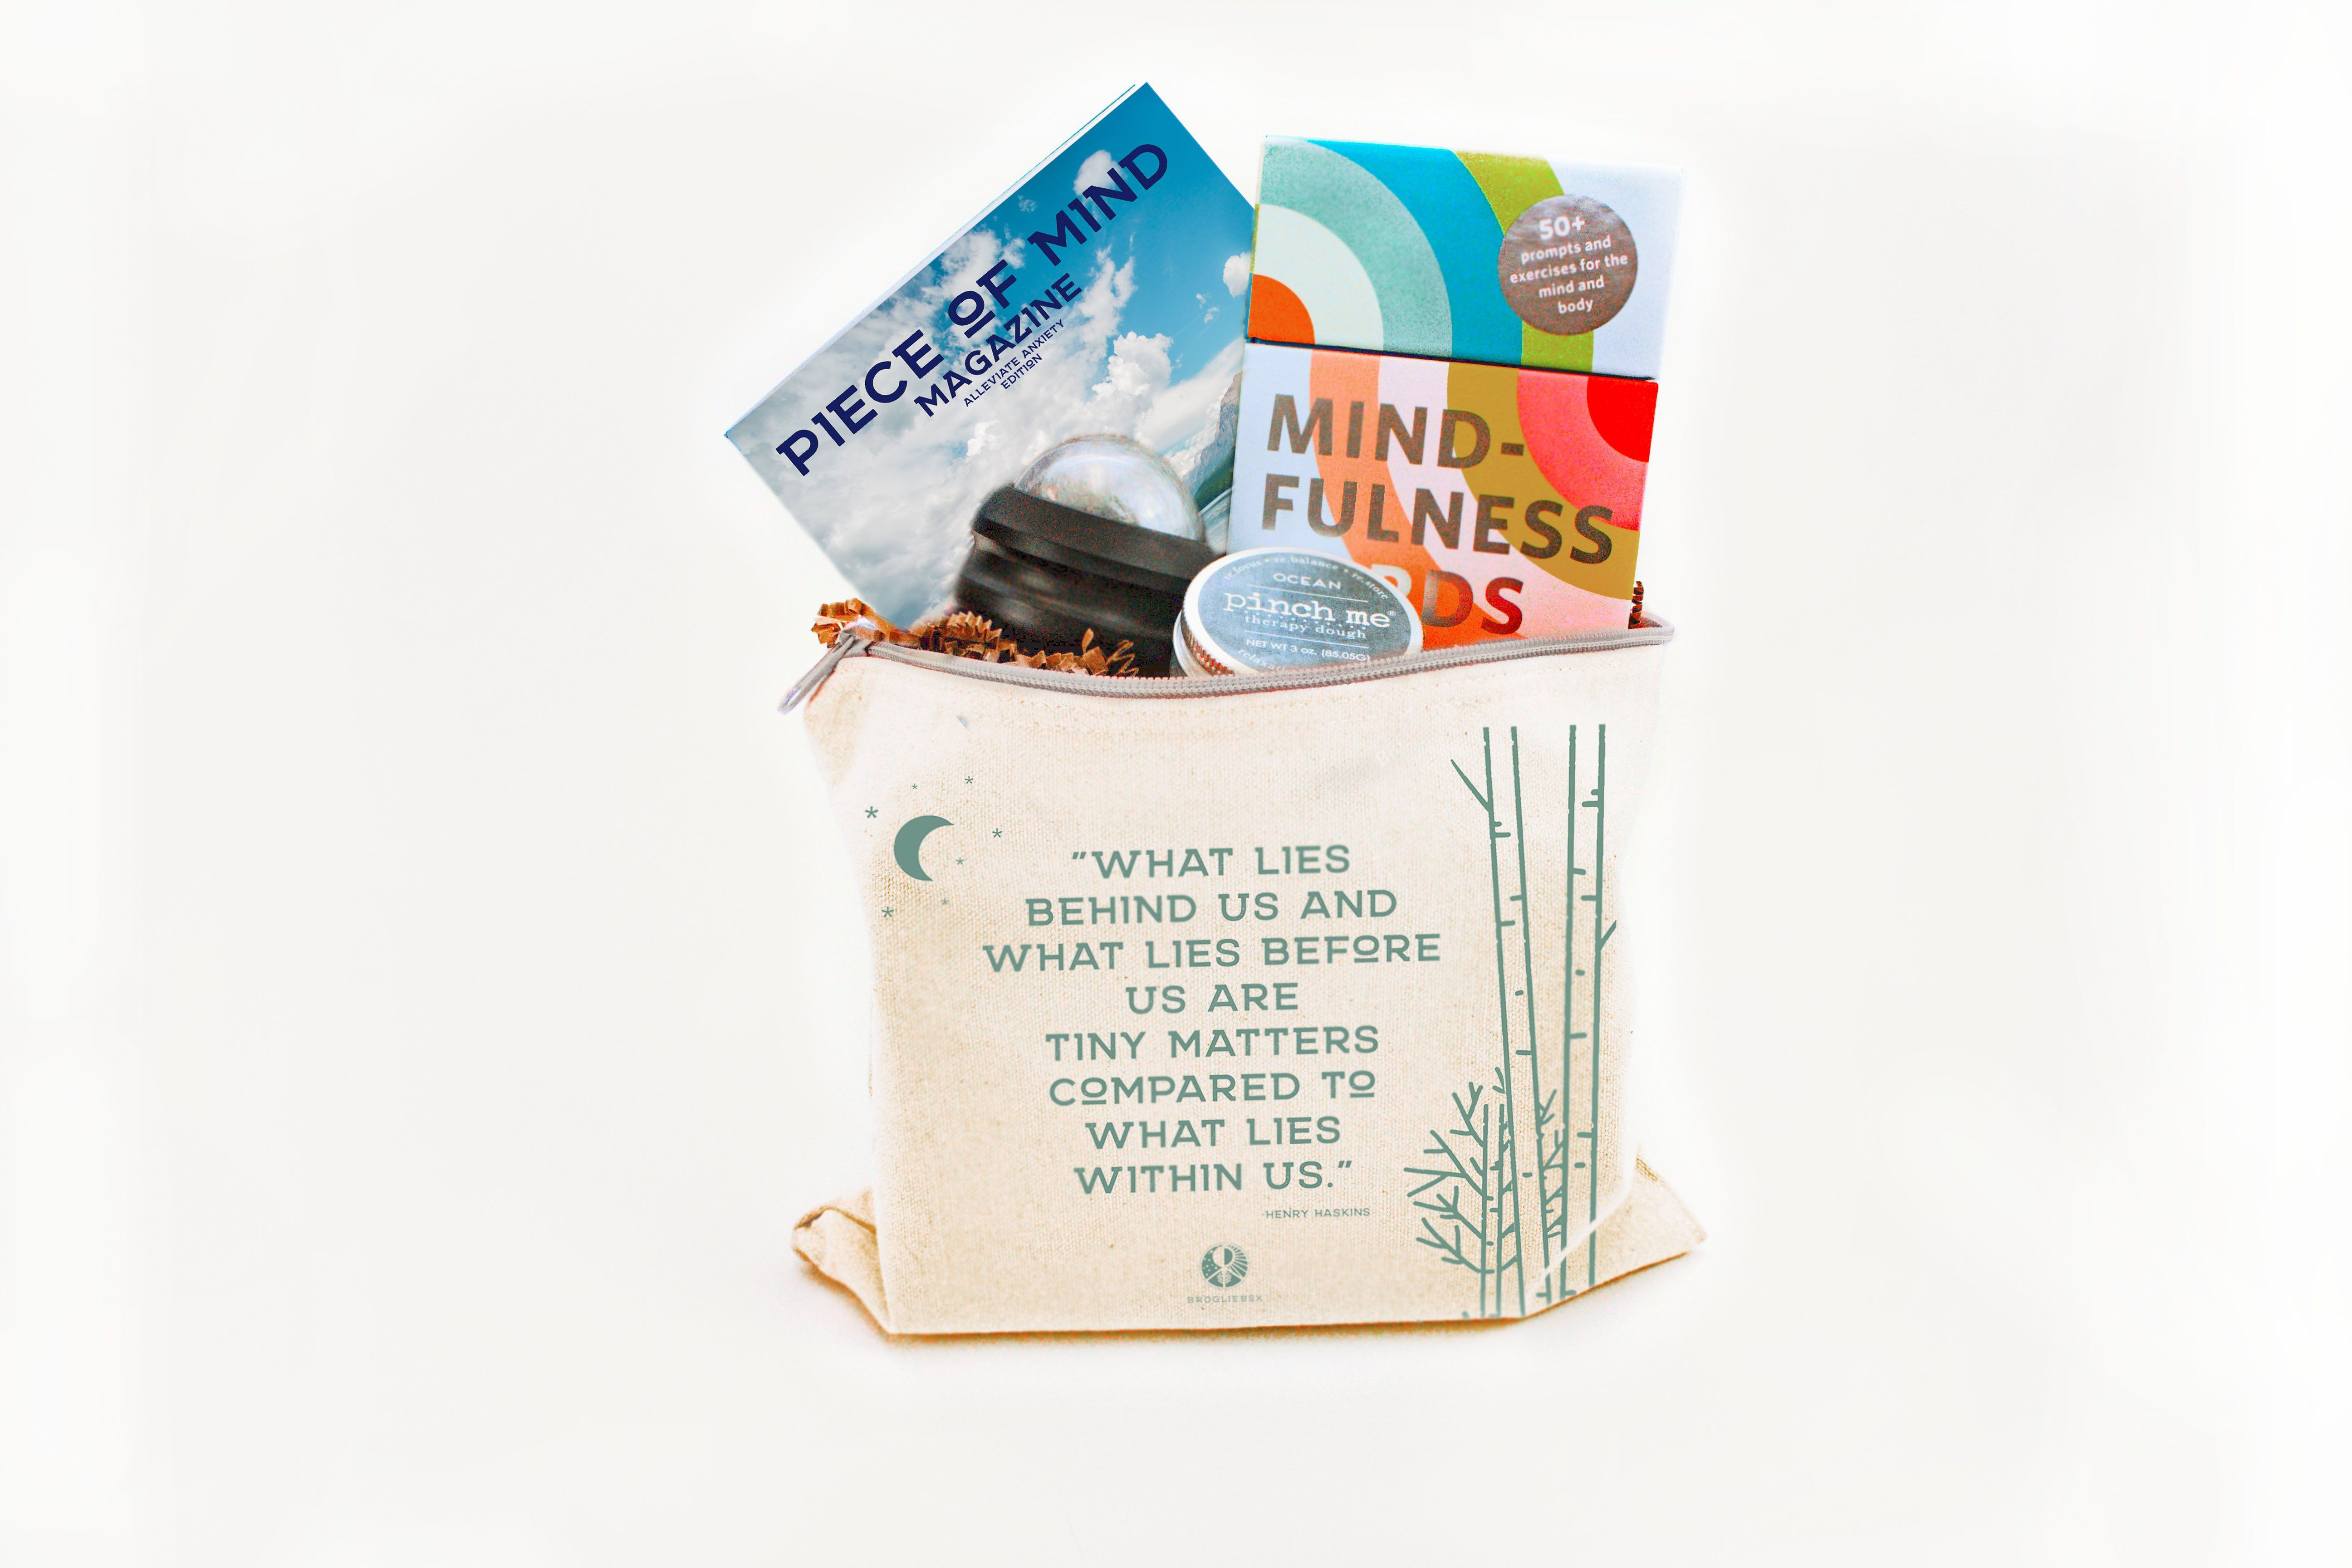 Anxiety is the most common mental health challenge facing our society today. This specially curated care package helps your loved one get grounded and find relief whether at home, school, work or on-the-go. This care package includes: BroglieBox™ Canvas Travel Bag with Quote Pinch Me® Therapy Dough Massage Rollerball 50+ Prompted Mindfulness Cards Piece of Mind Magazine™ - Alleviate Anxiety Edition Piece Of Mind Magazine™: Alleviate Anxiety Edition includes the following articles from mental hea